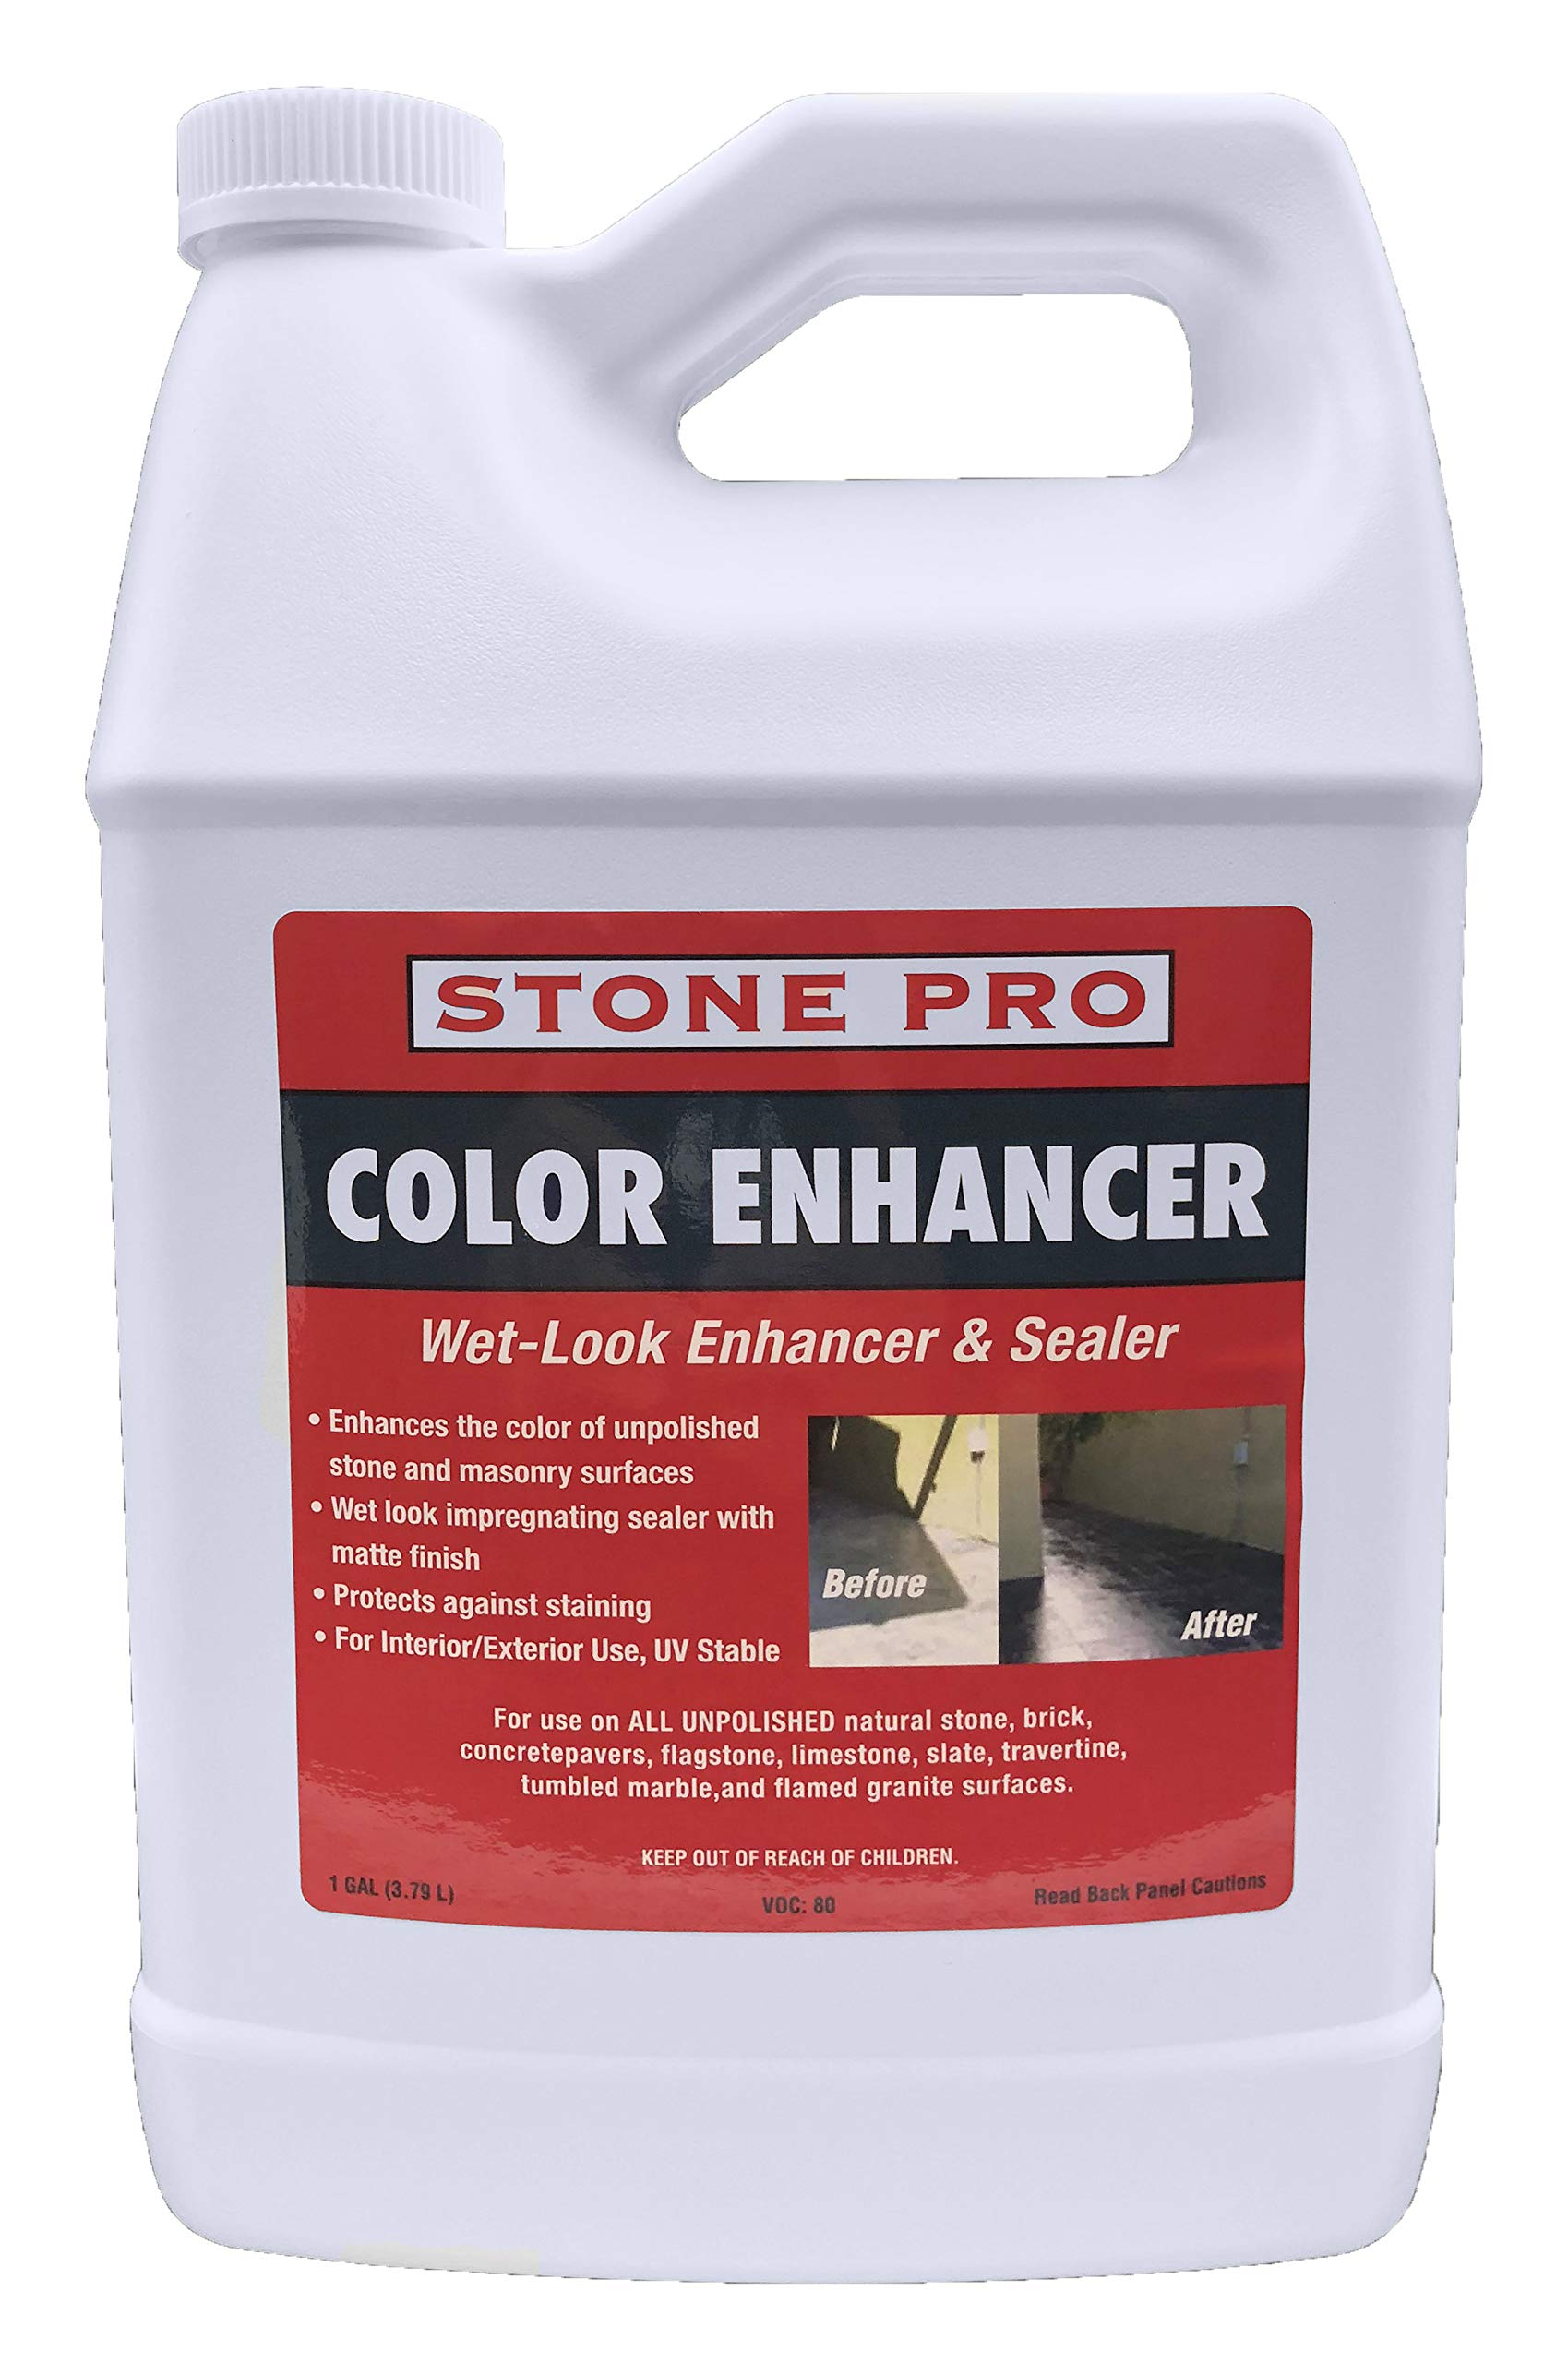 Stone Pro Color Enhancer - Unpolished Stone Sealer and Enhancer - 1 Gallon by Stone Pro